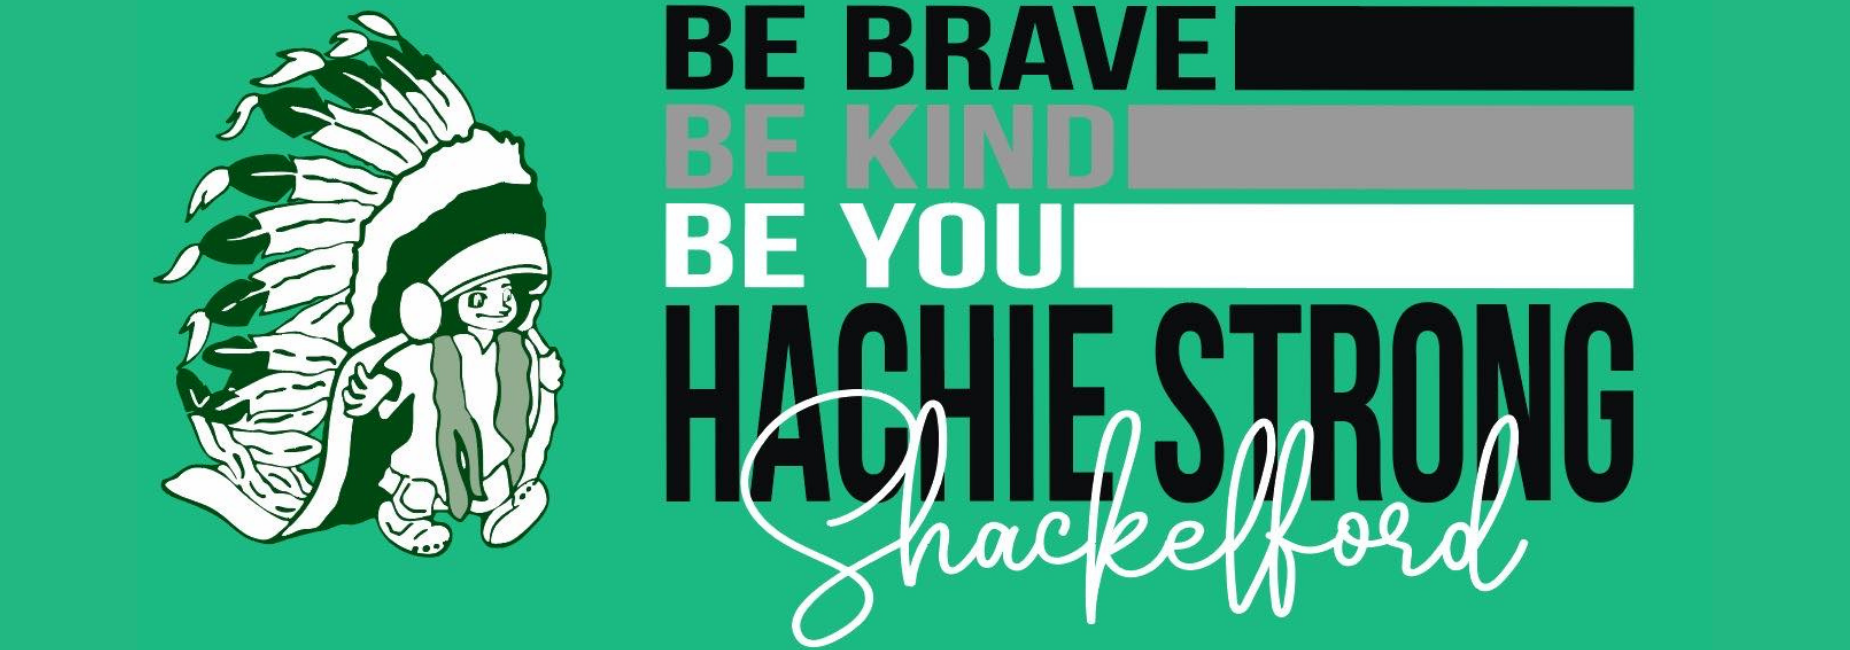 graphic with school logo reads be brave, be kind, be you, hachie strong, shackelford